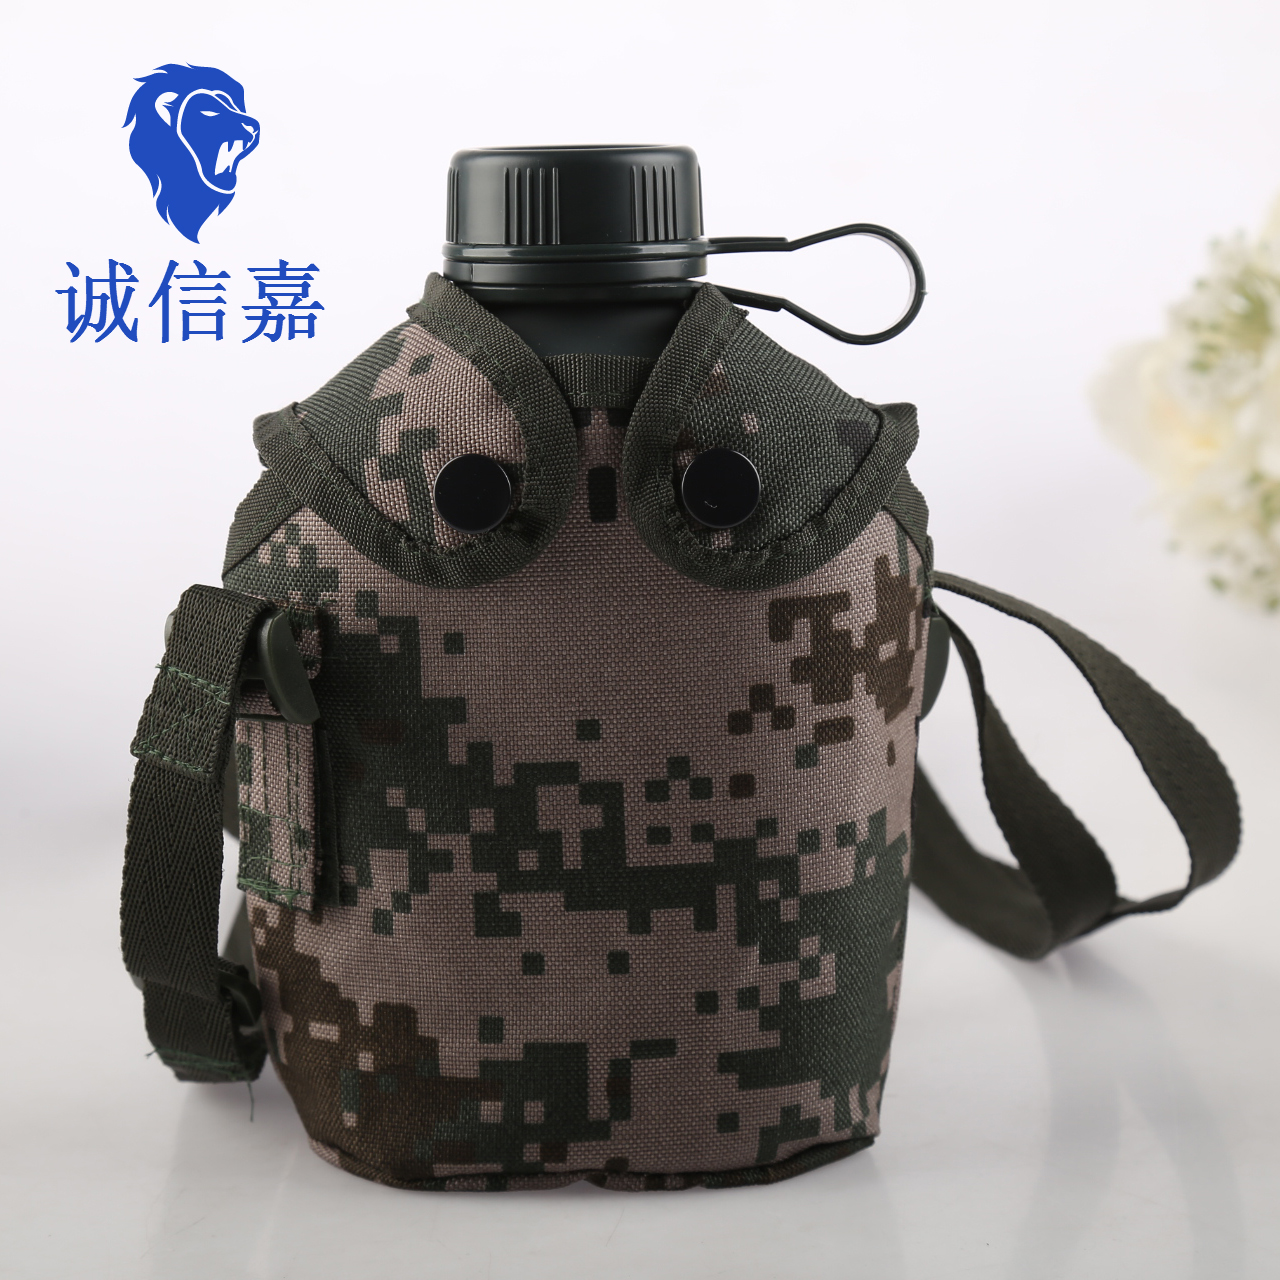 Genuine 07 Camouflage < Military Water Bottle Stainless Steel Military Training Large Capacity Water Bottle Outdoor Travel Cup < Water Bottle